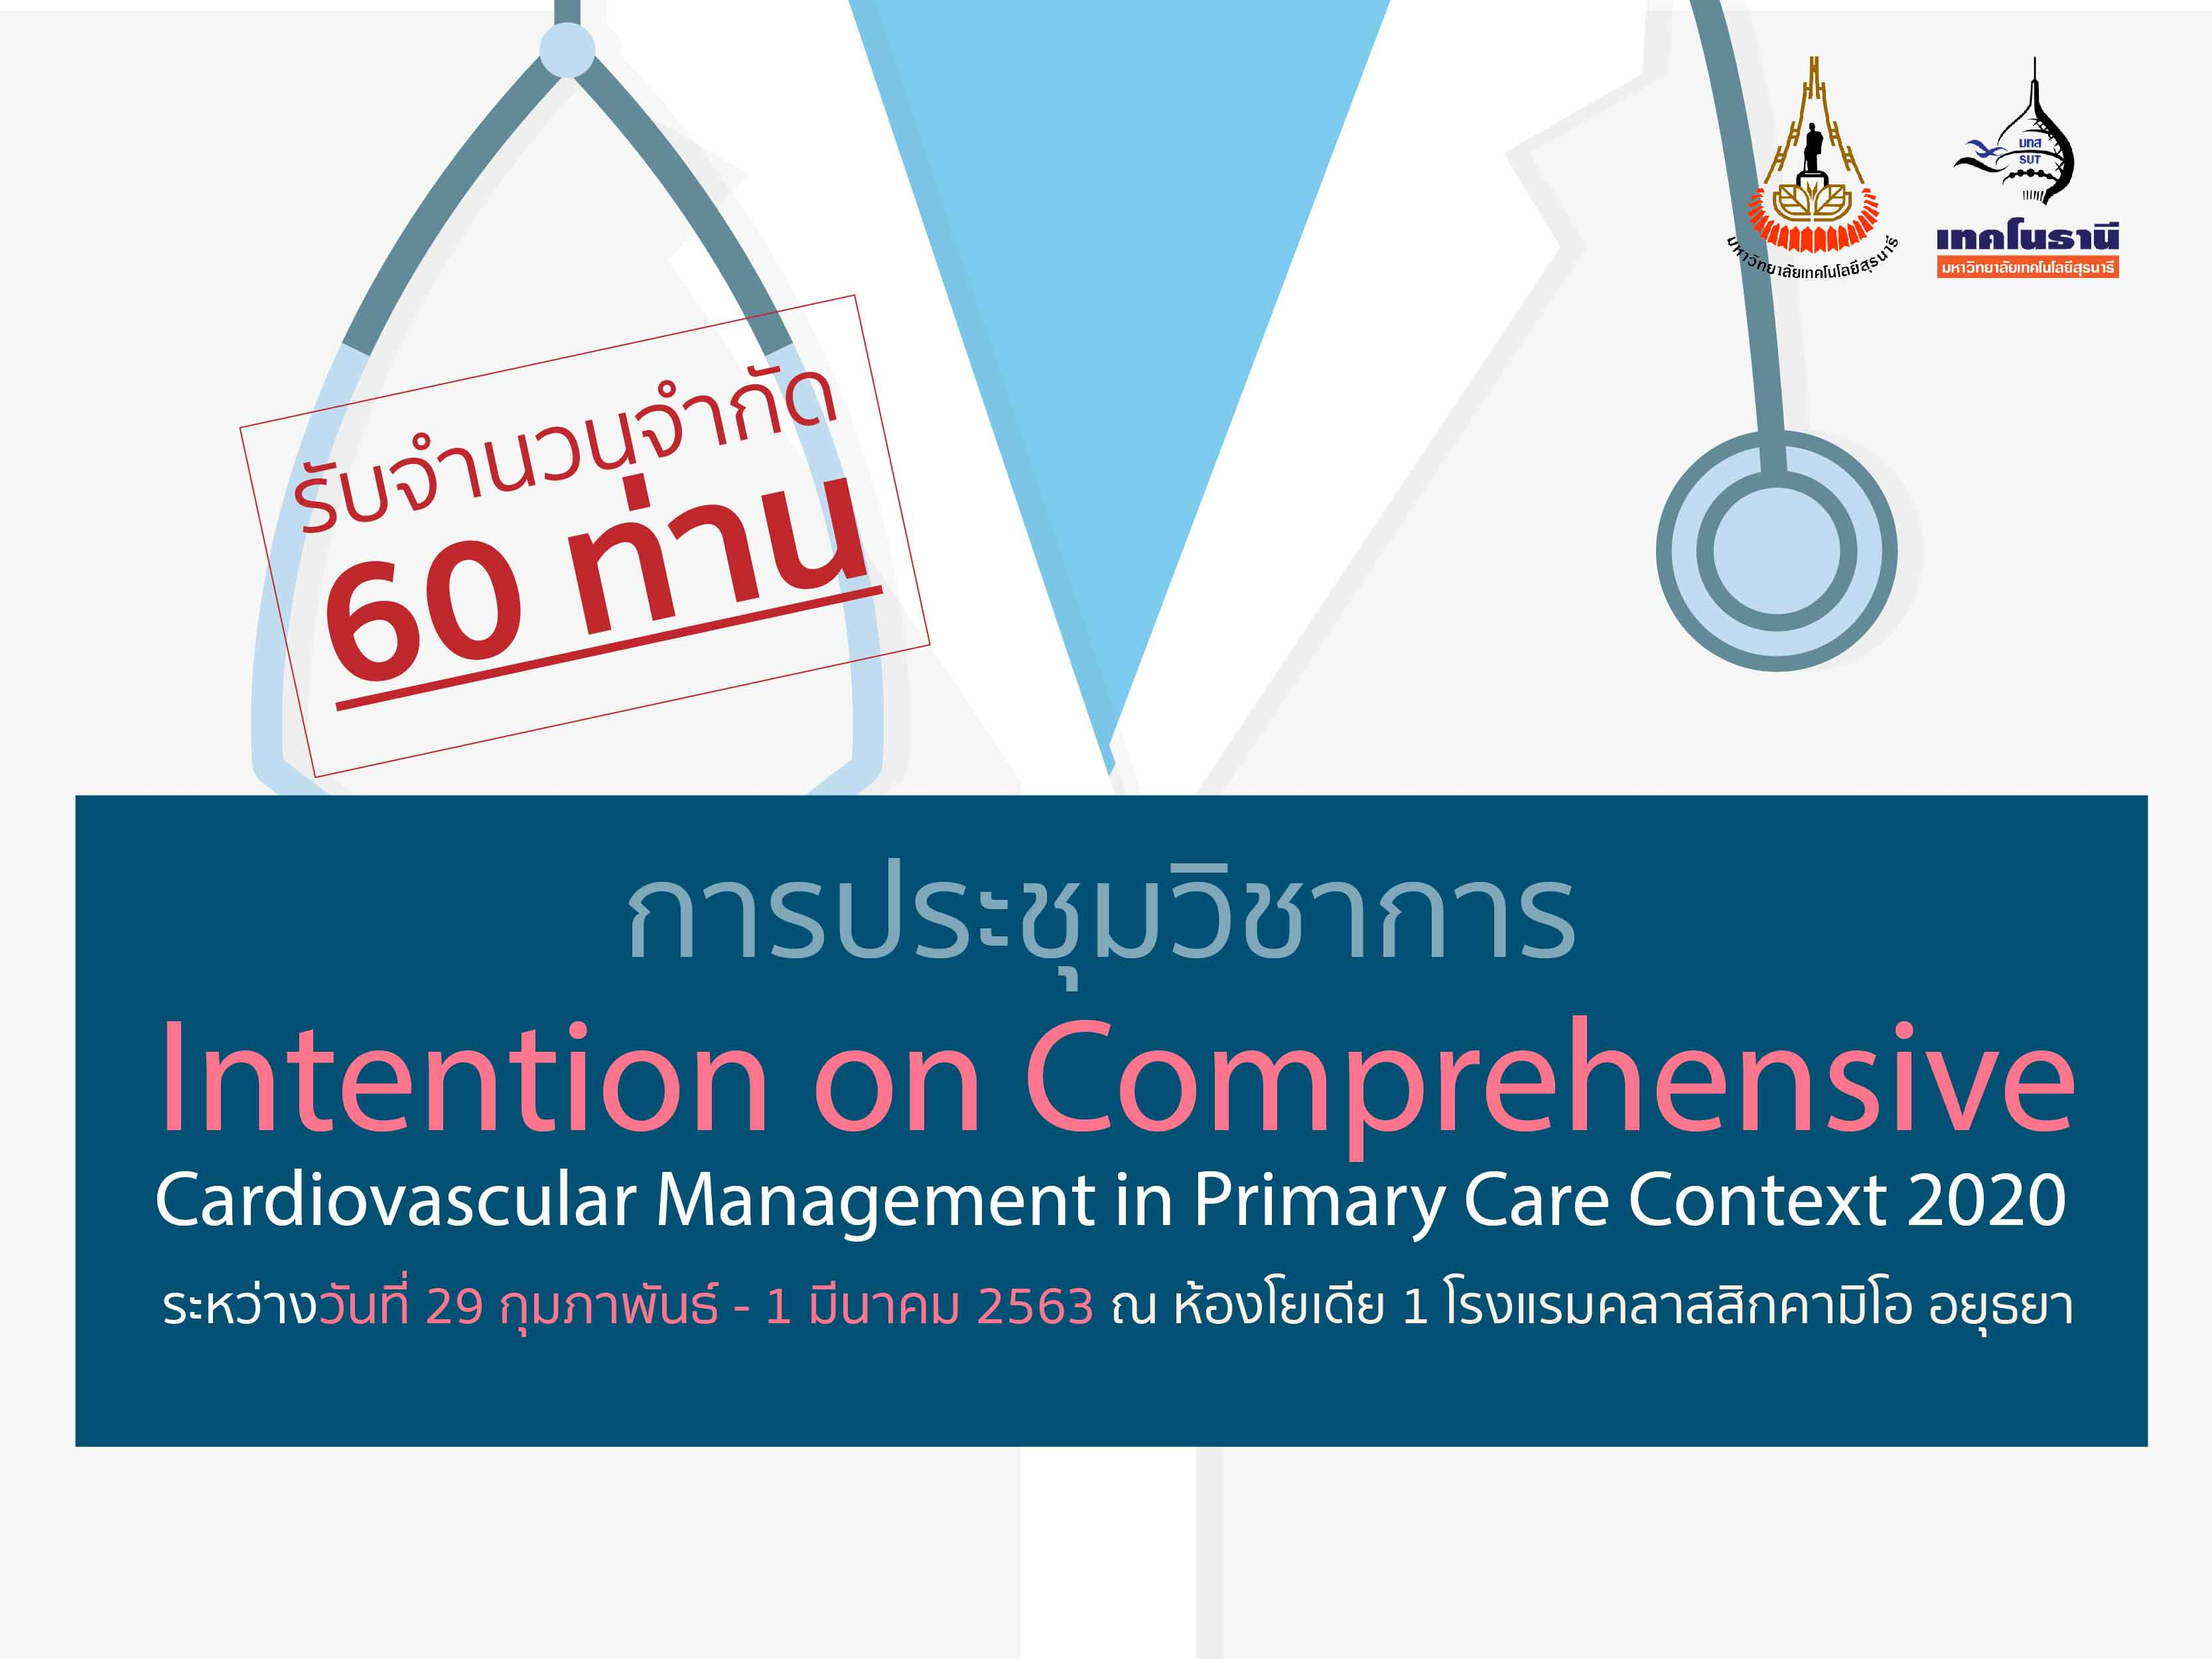 การประชุมวิชาการ Intention on Comprehensive Cardiovascular Management in Primary Care Context 2020